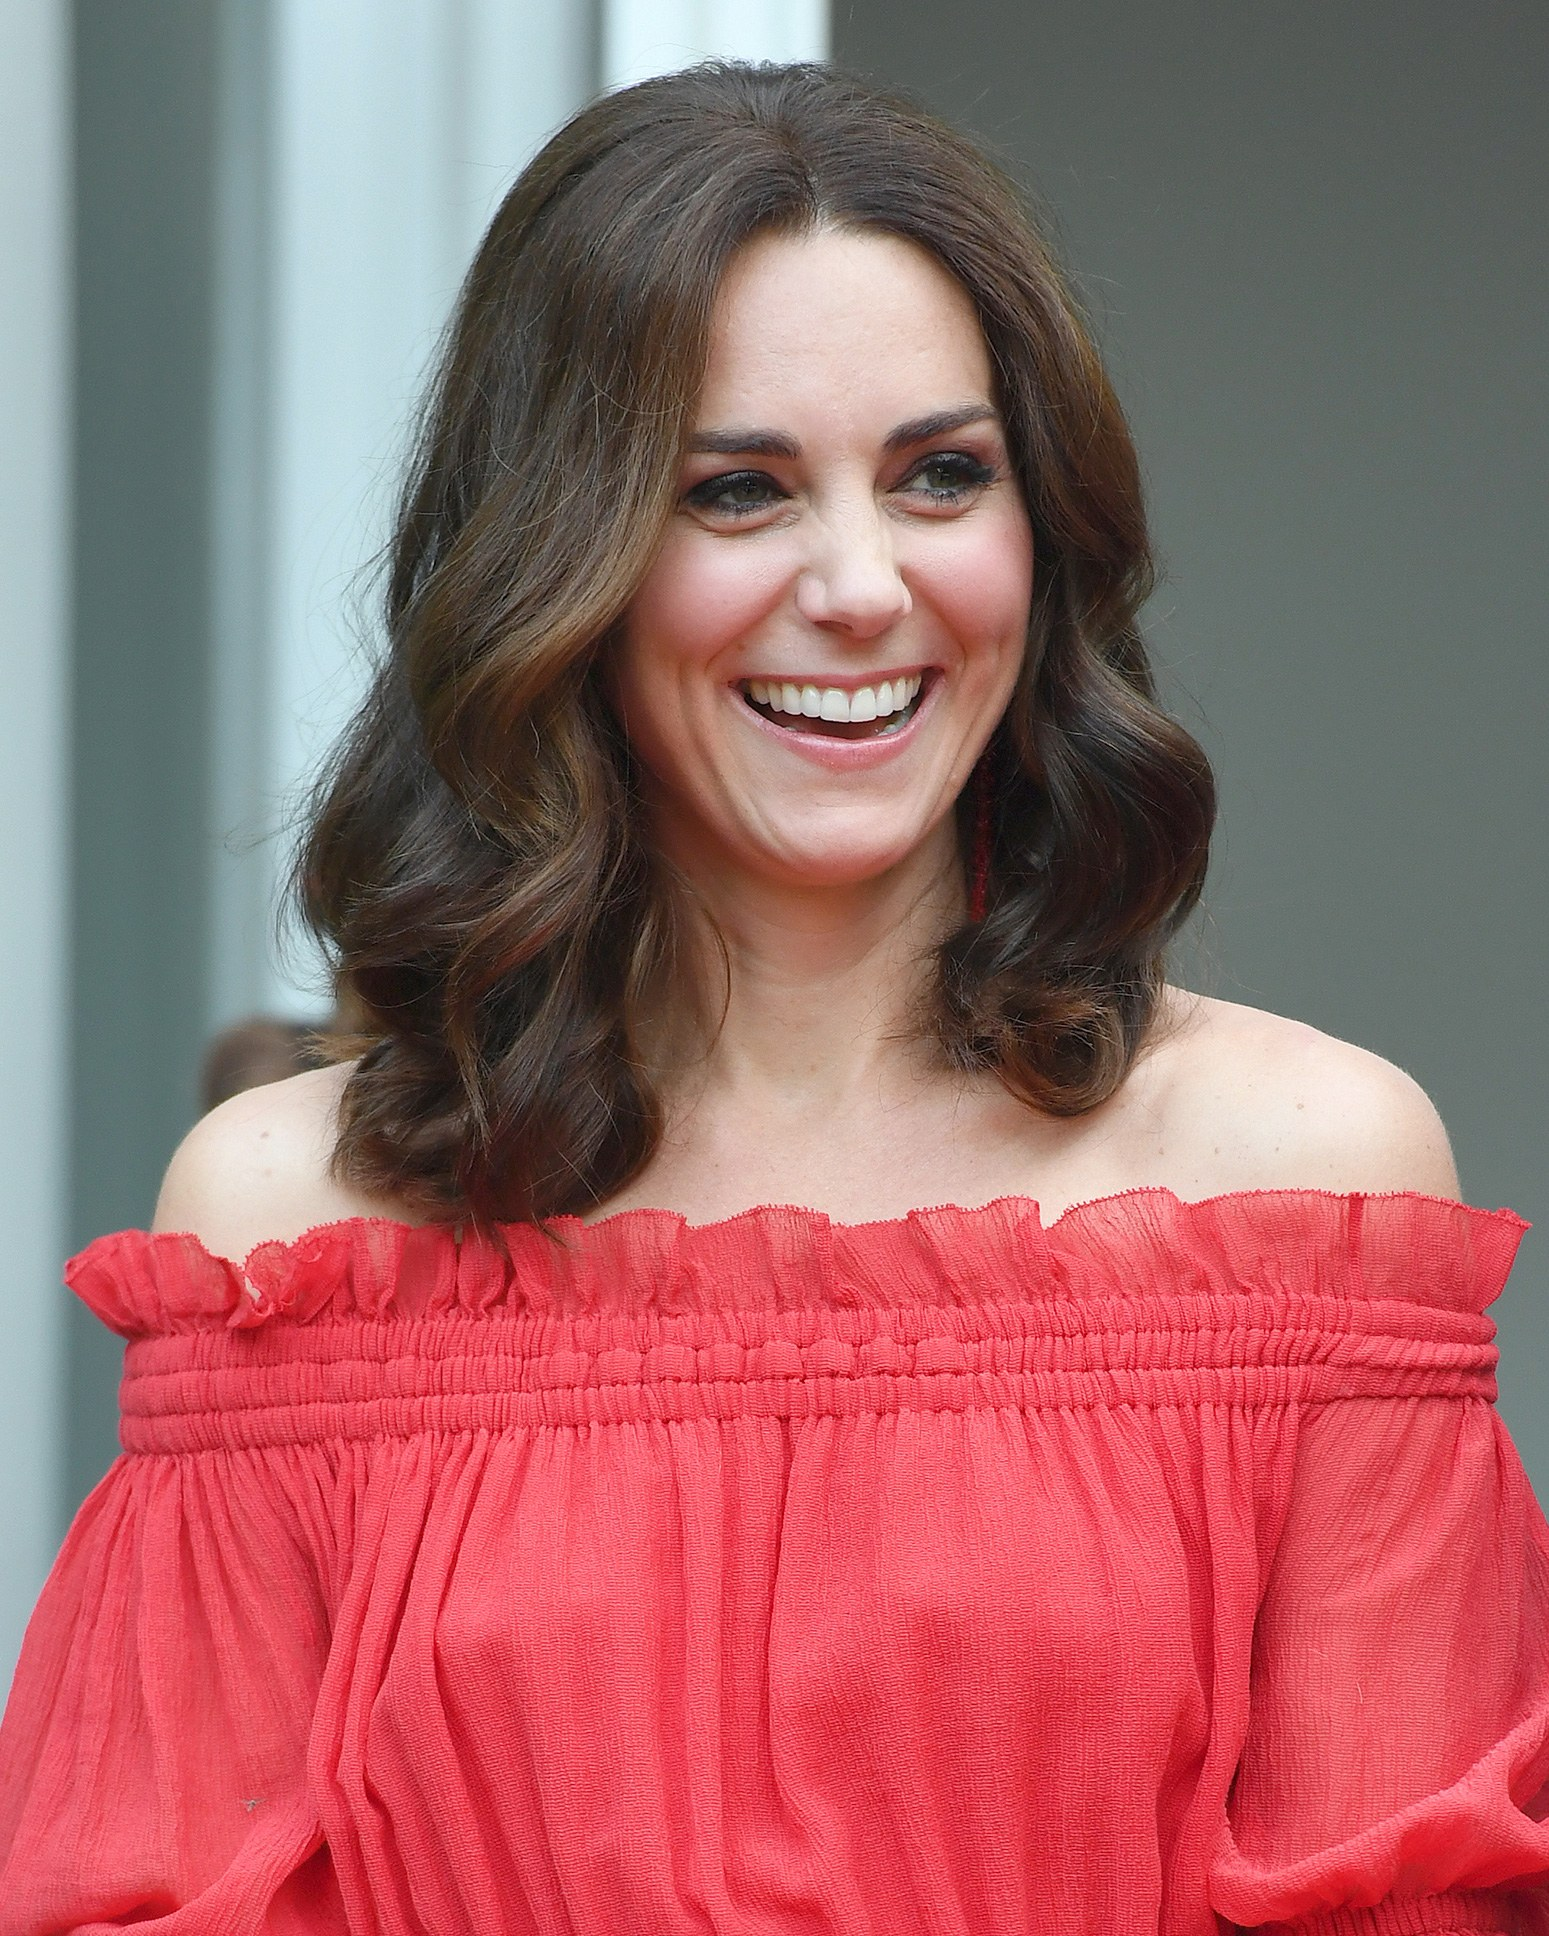 Iperemesi Gravidica: Disturbo di Kate Middleton